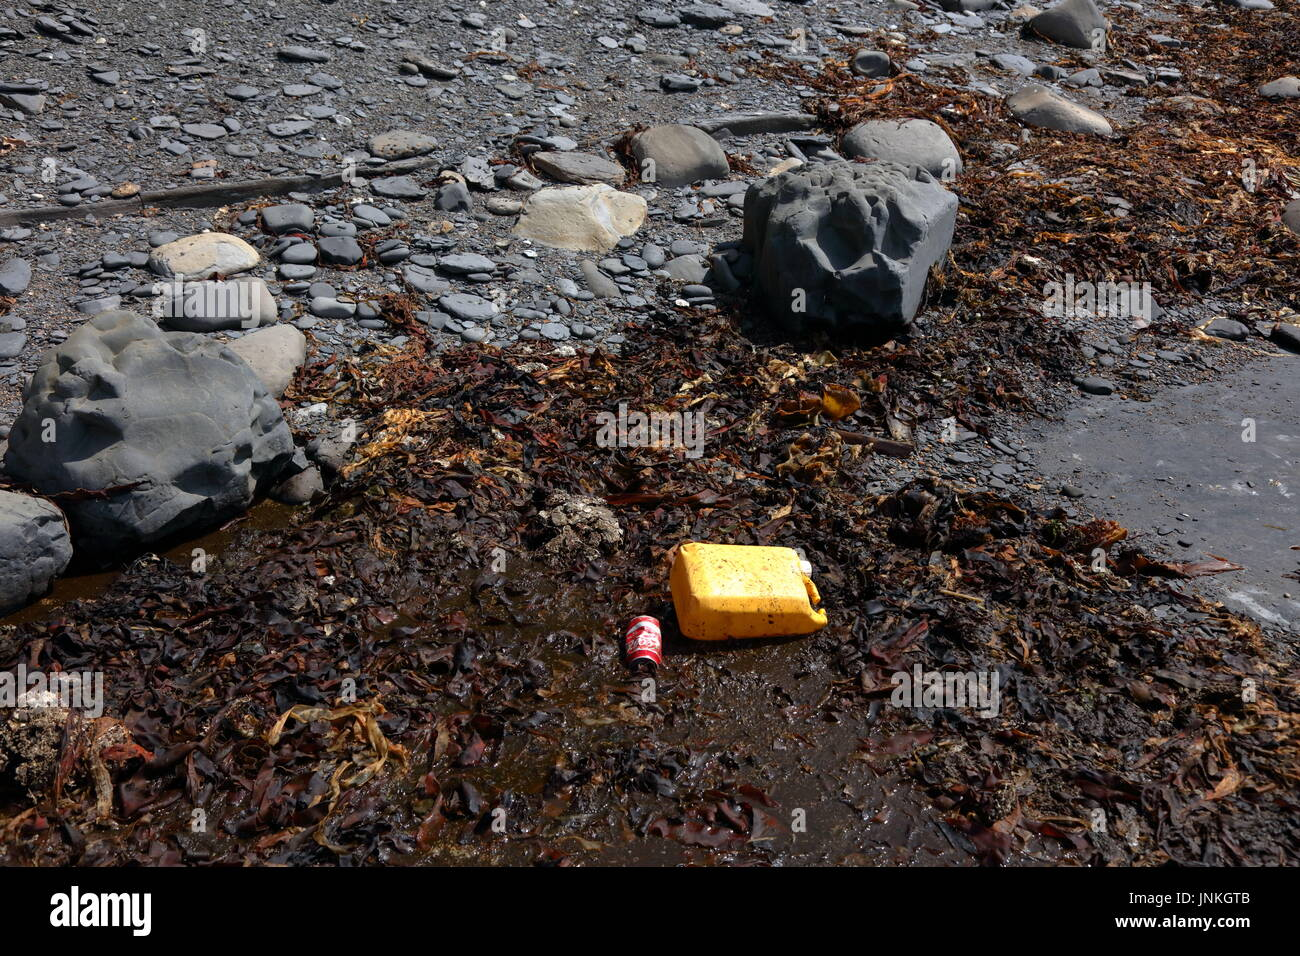 Plastic container and infamously discarded Coke can amidst kelp seaweed and shale washed up on beach in Dorset UK - Stock Image